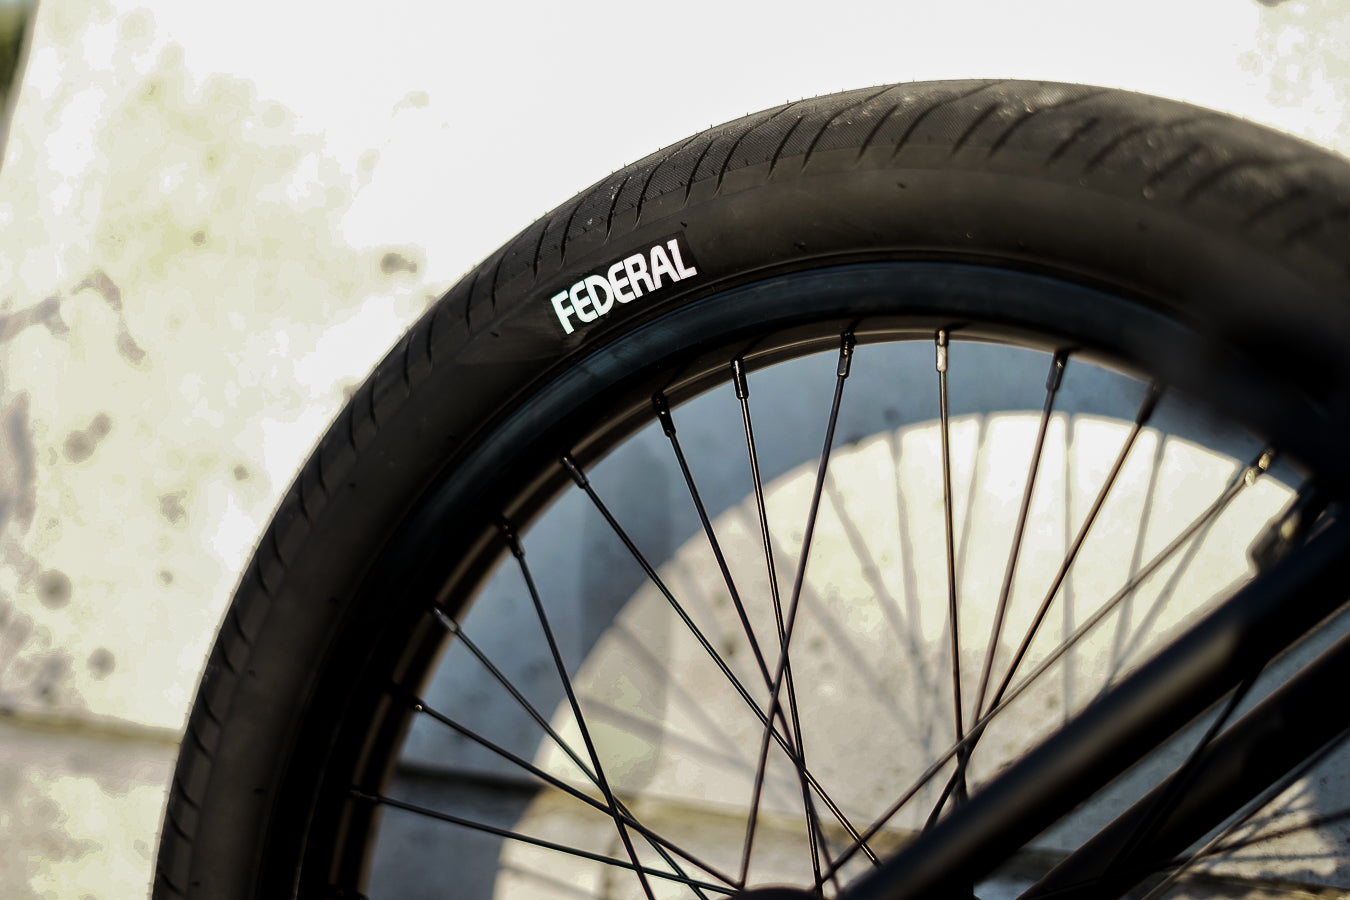 Federal BMX - Carlos Vinuesa bike check